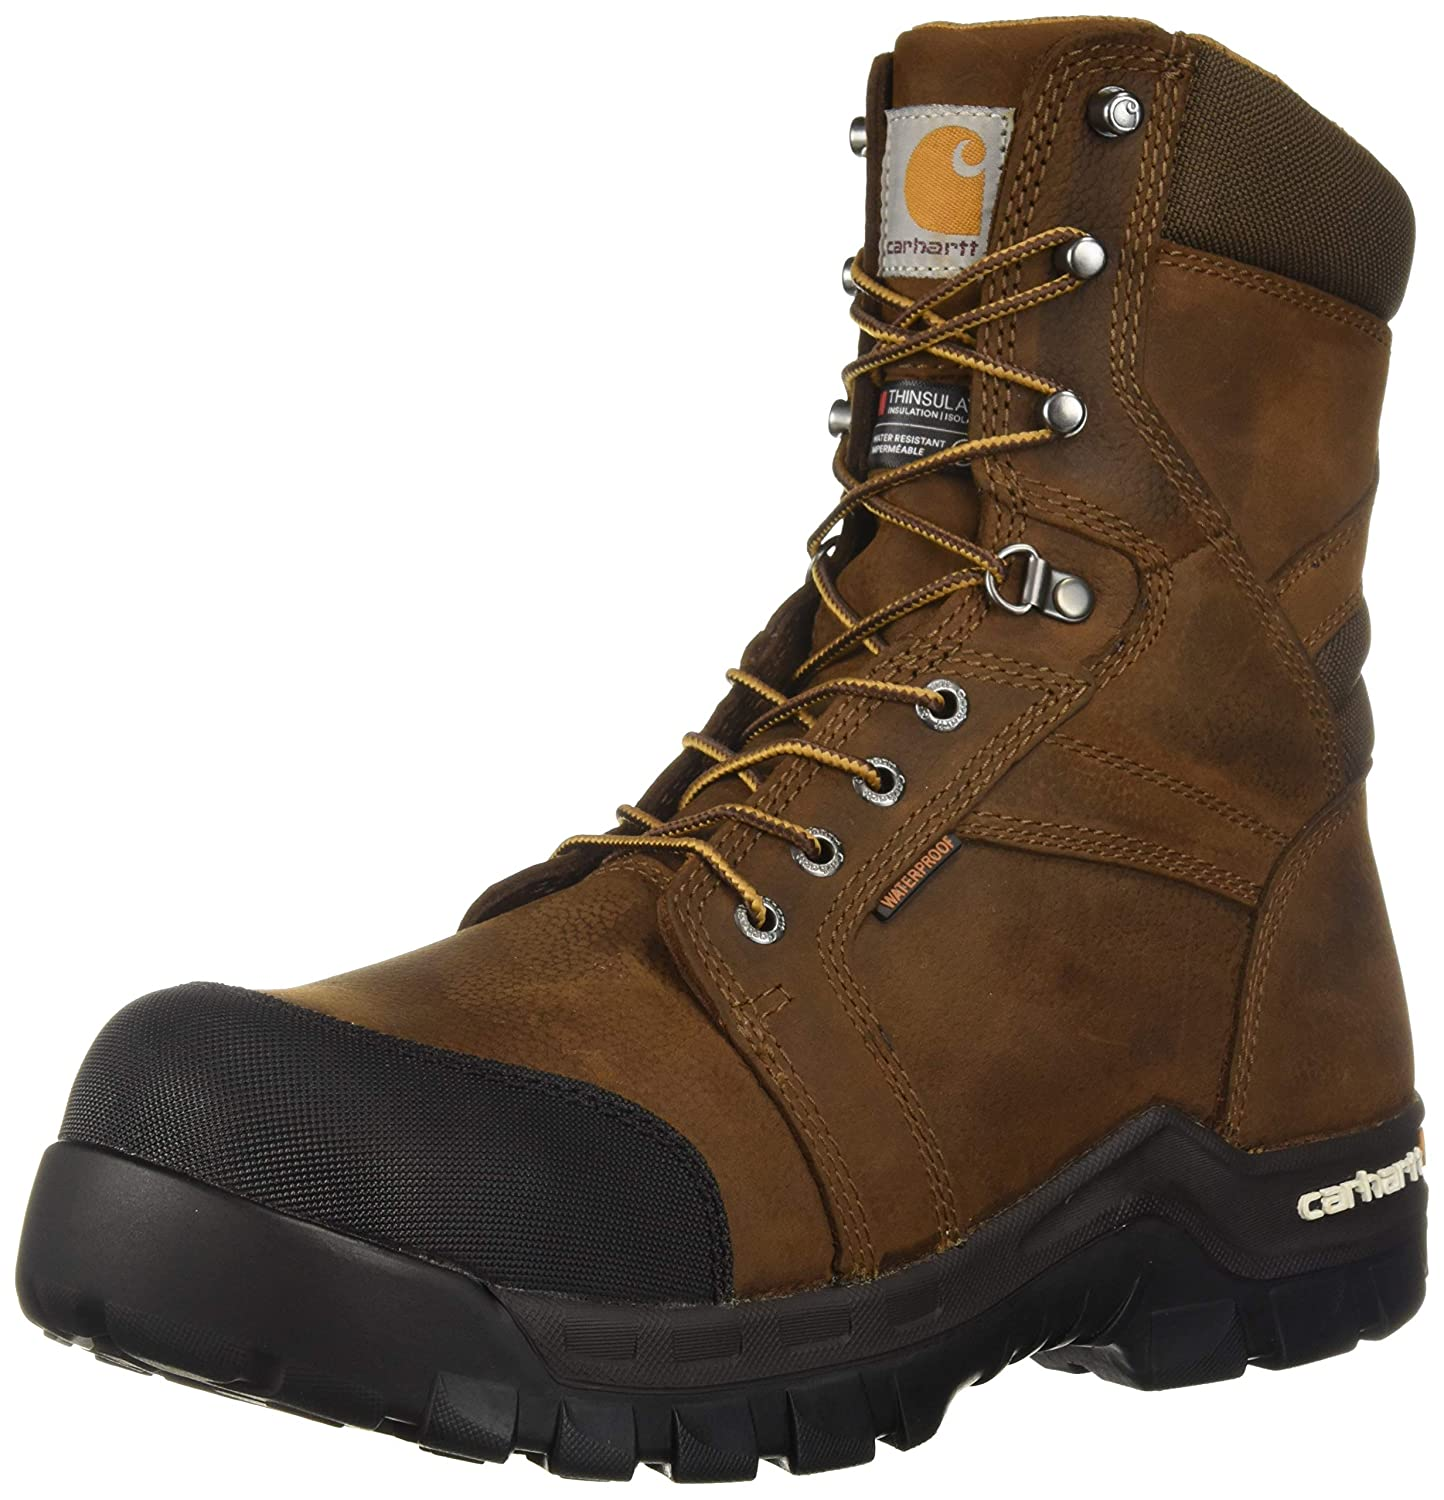 44a5d520f4c Carhartt Men's CSA 8-inch Rugged Flex Wtrprf Insulated Work Boot Comp  Safety Toe Cmr8939 Industrial